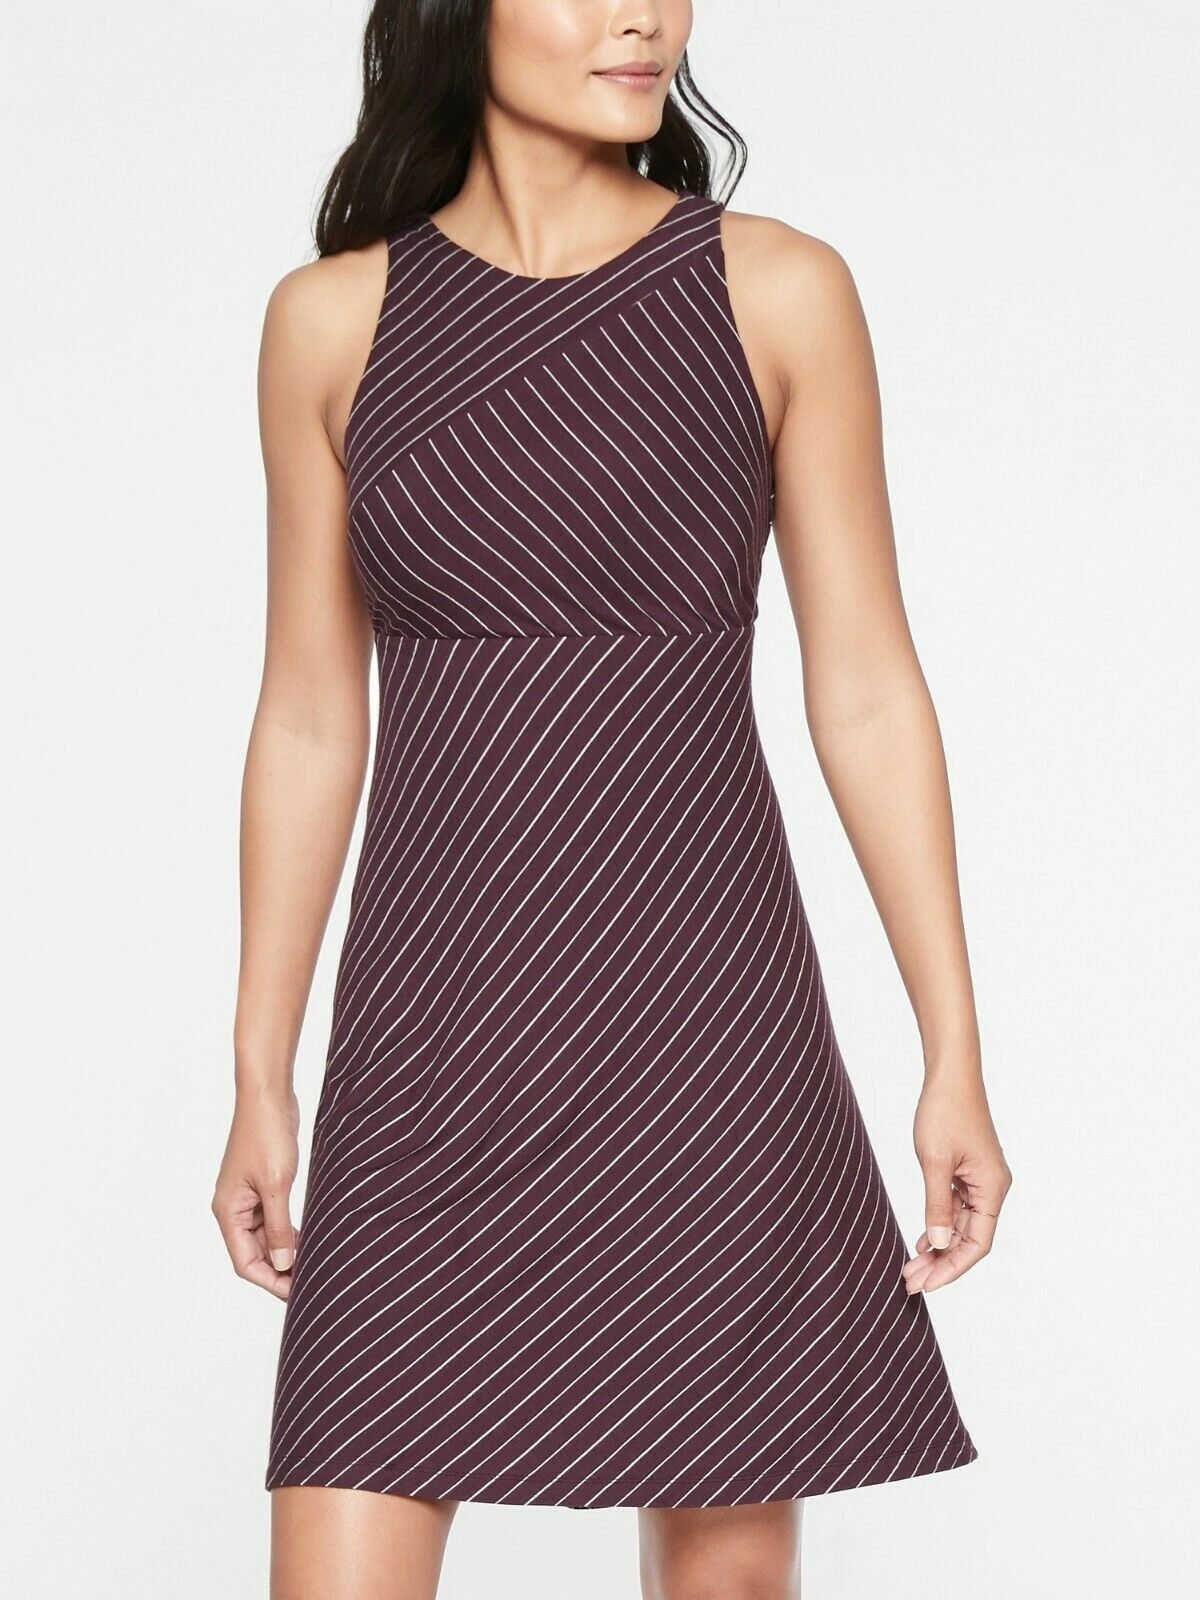 Athleta Santorini High Neck Mix Stripe Dress,Go Stripe Spiced C Größe L